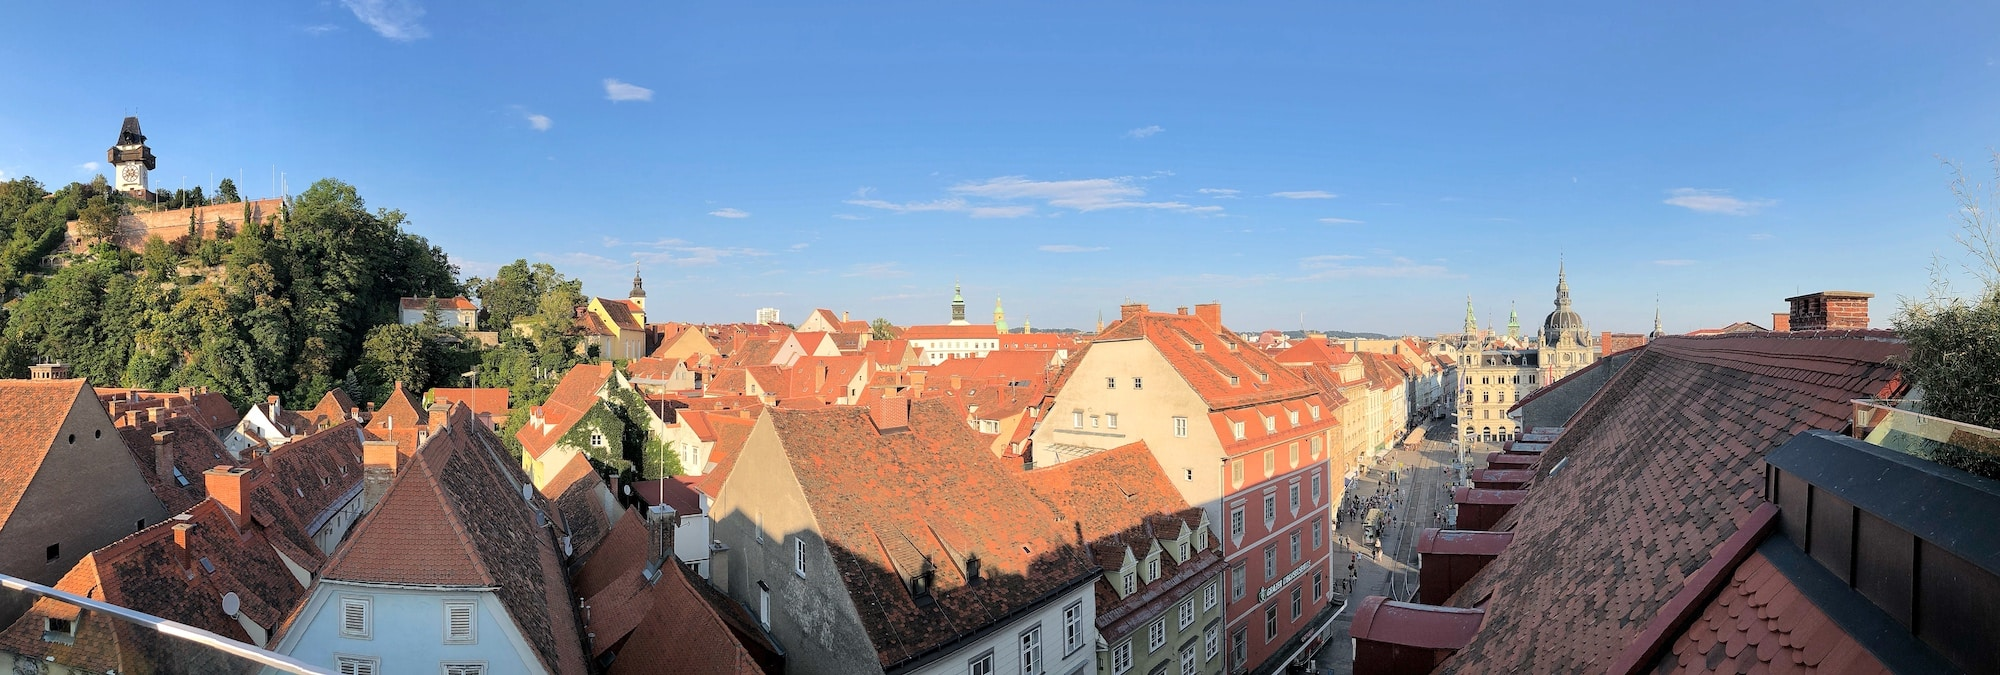 Panoramic view of the city of Graz